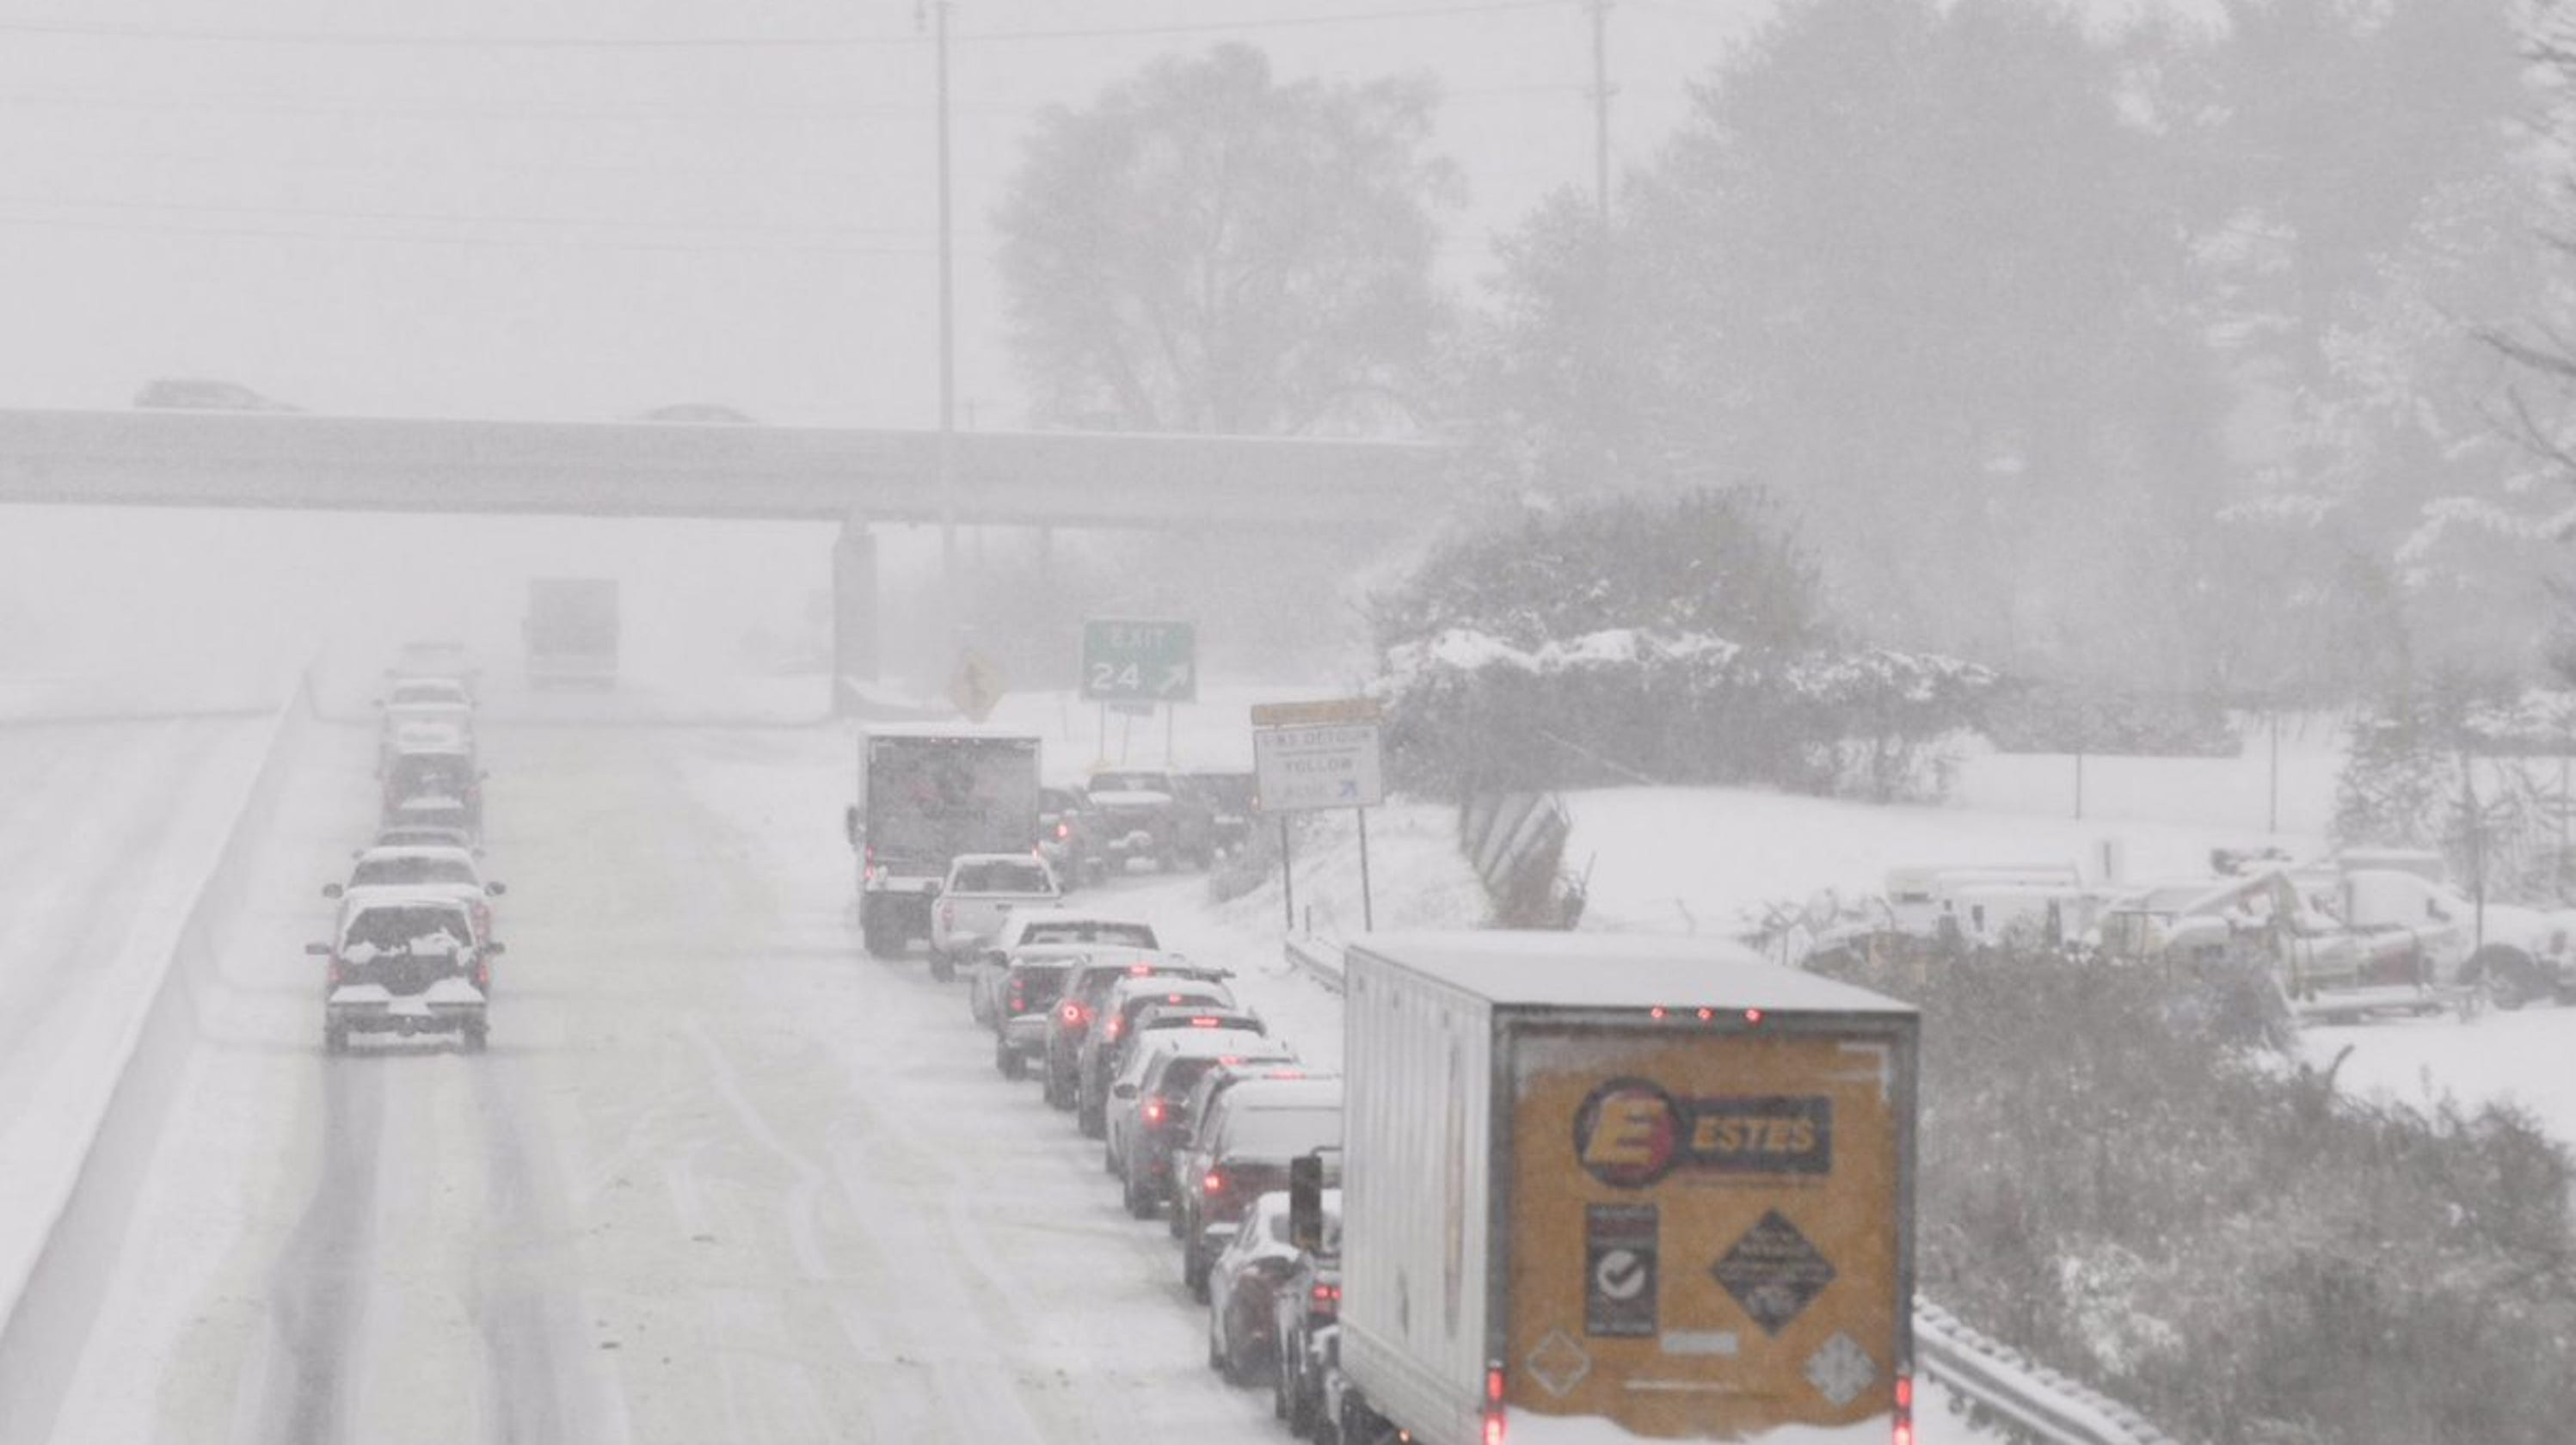 Pa  winter snow storm: PennDOT sets speed, vehicle restrictions